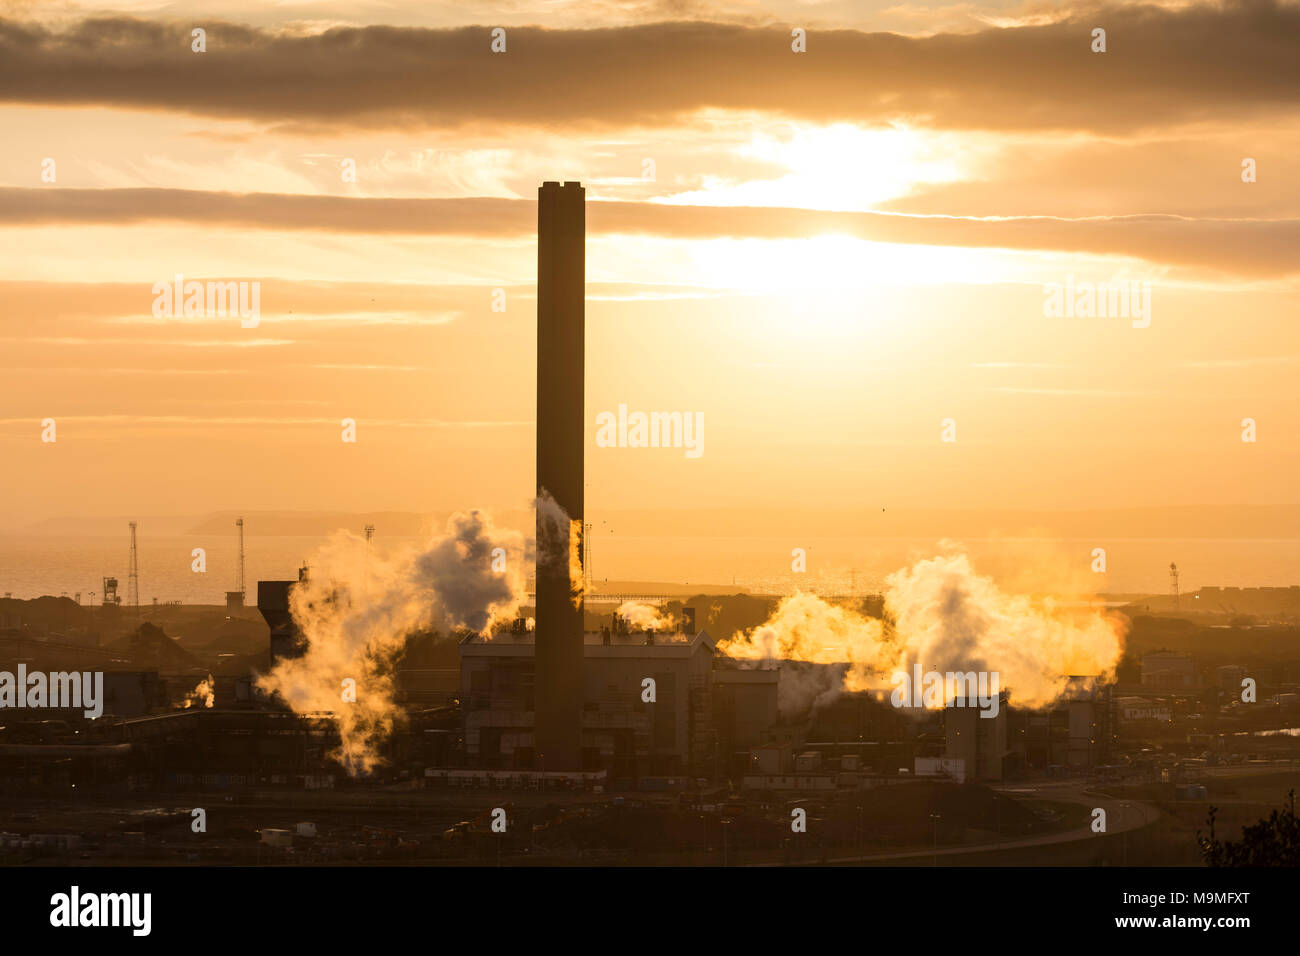 Tata Steel steelworks in Port Talbot, South Wales. - Stock Image